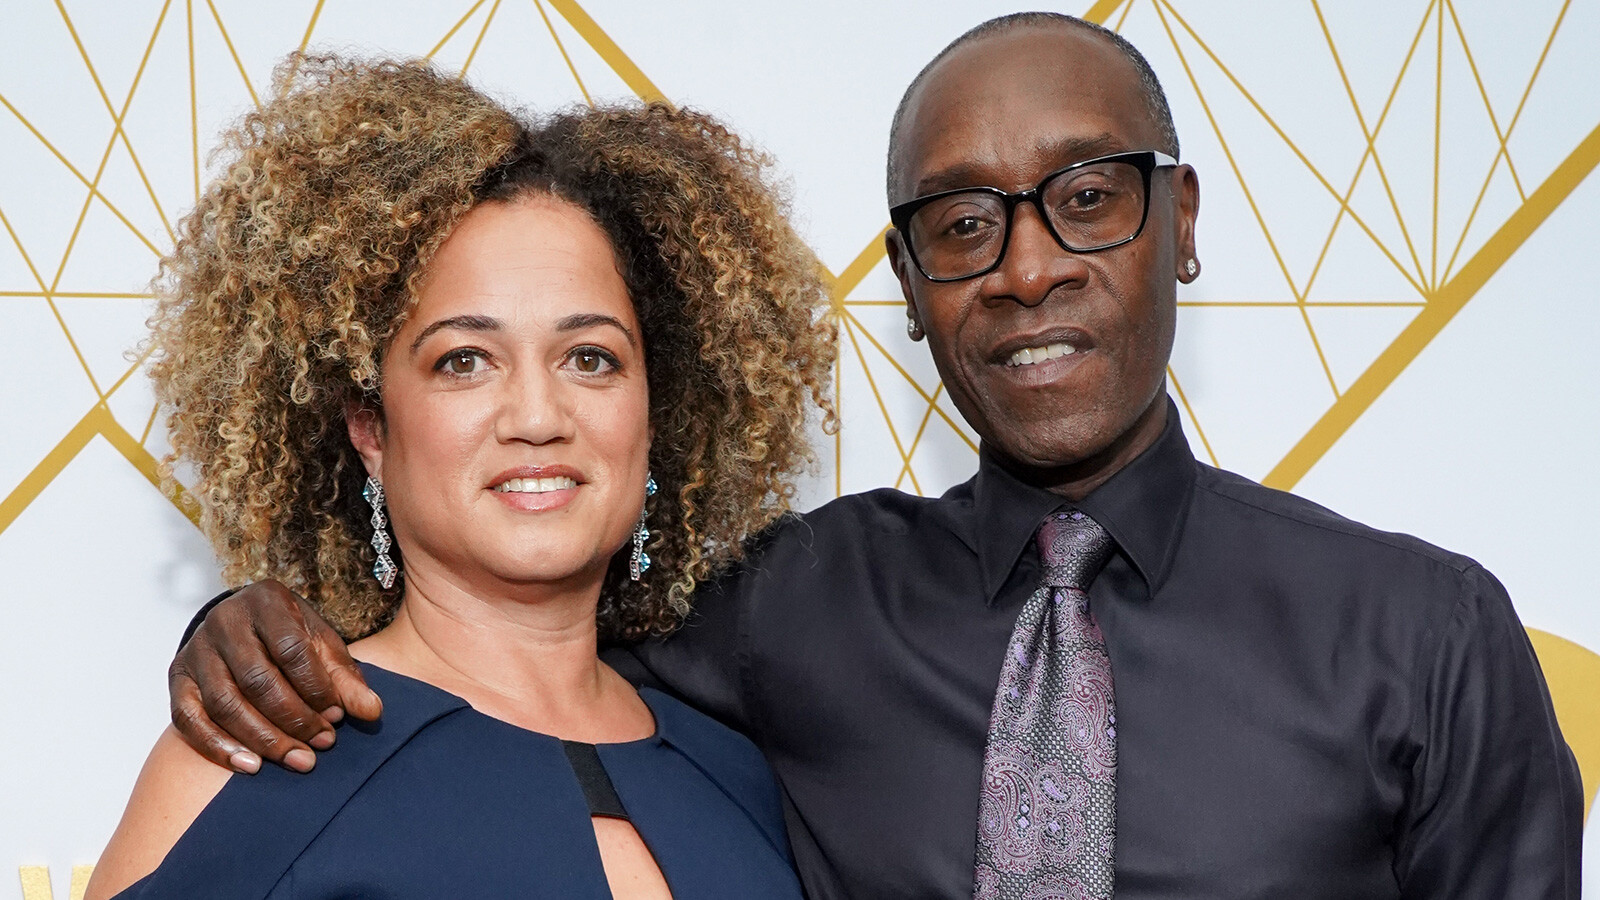 Don Cheadle explains why he got married to Bridgid Coulter after 28 years of dating